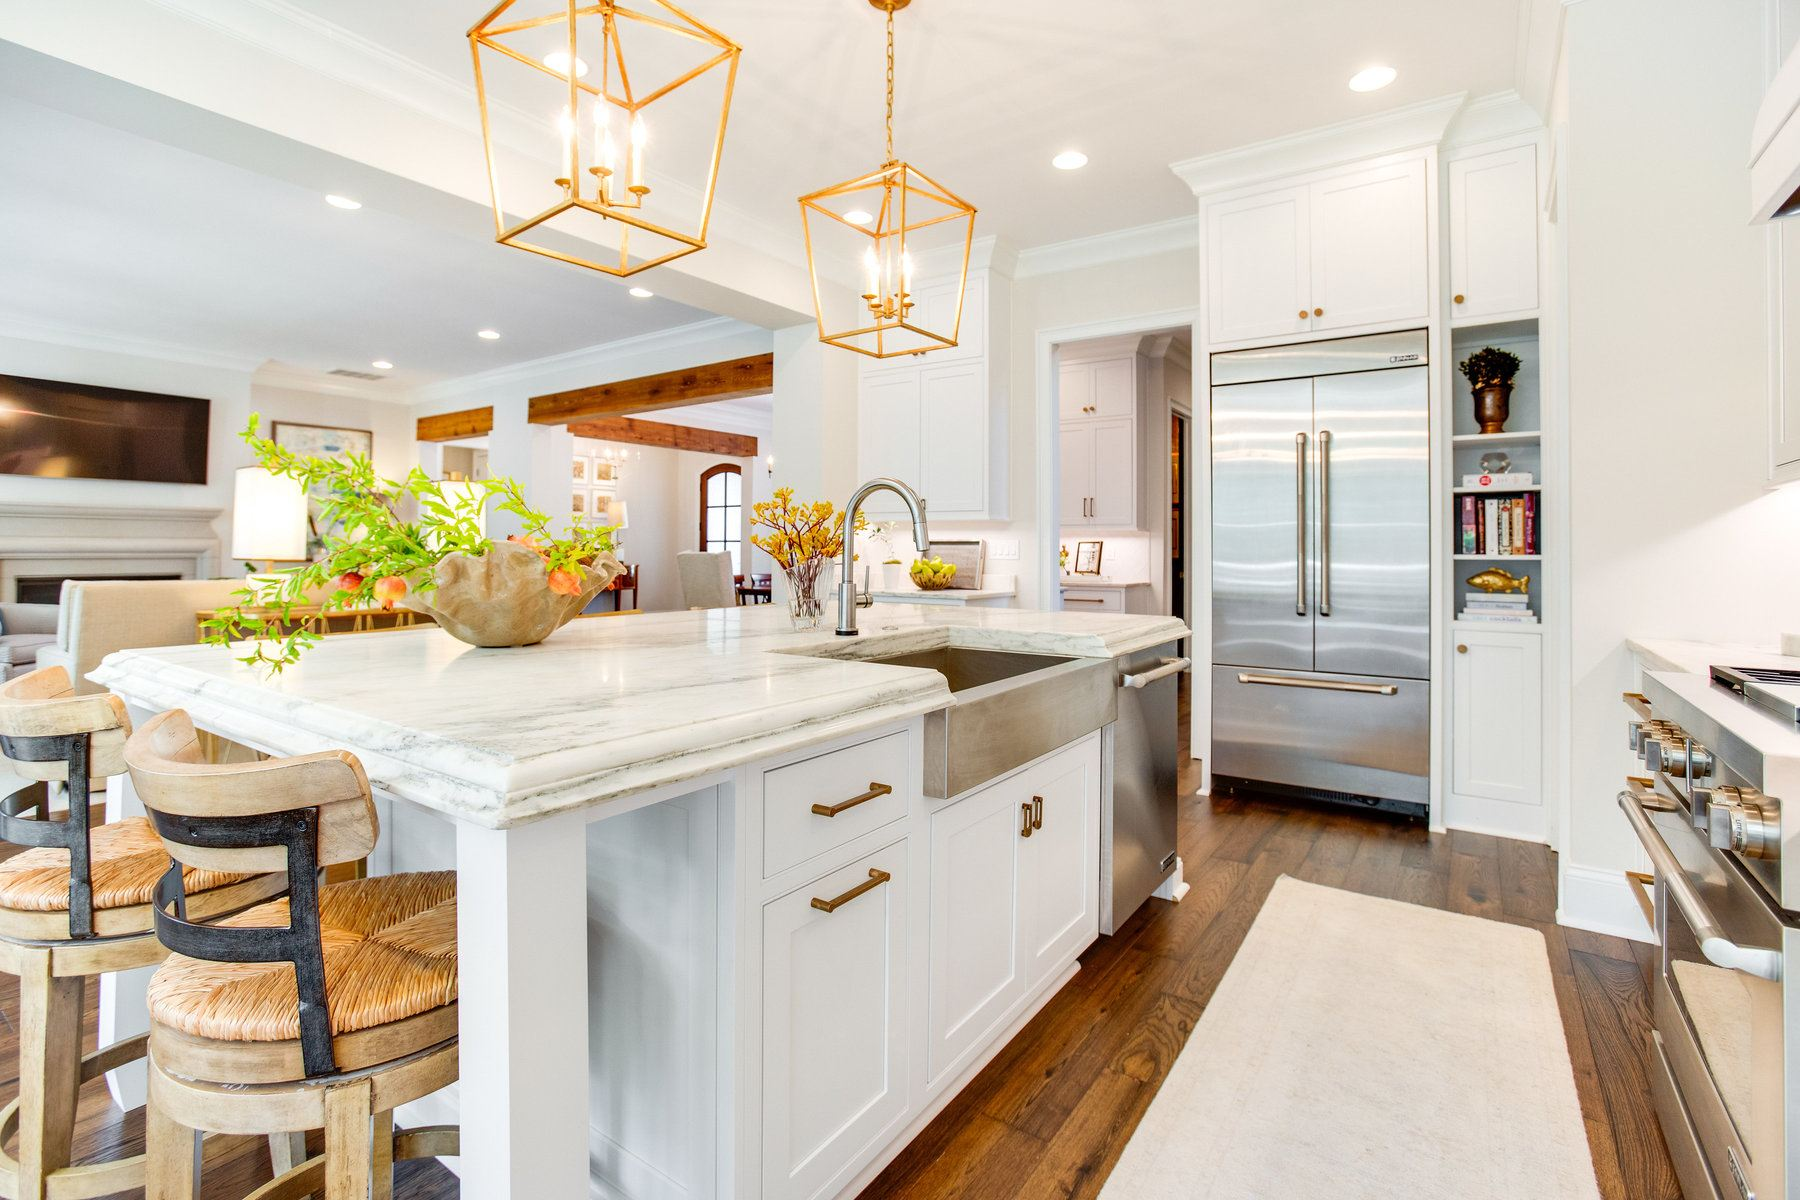 toulmin cabinetry & design